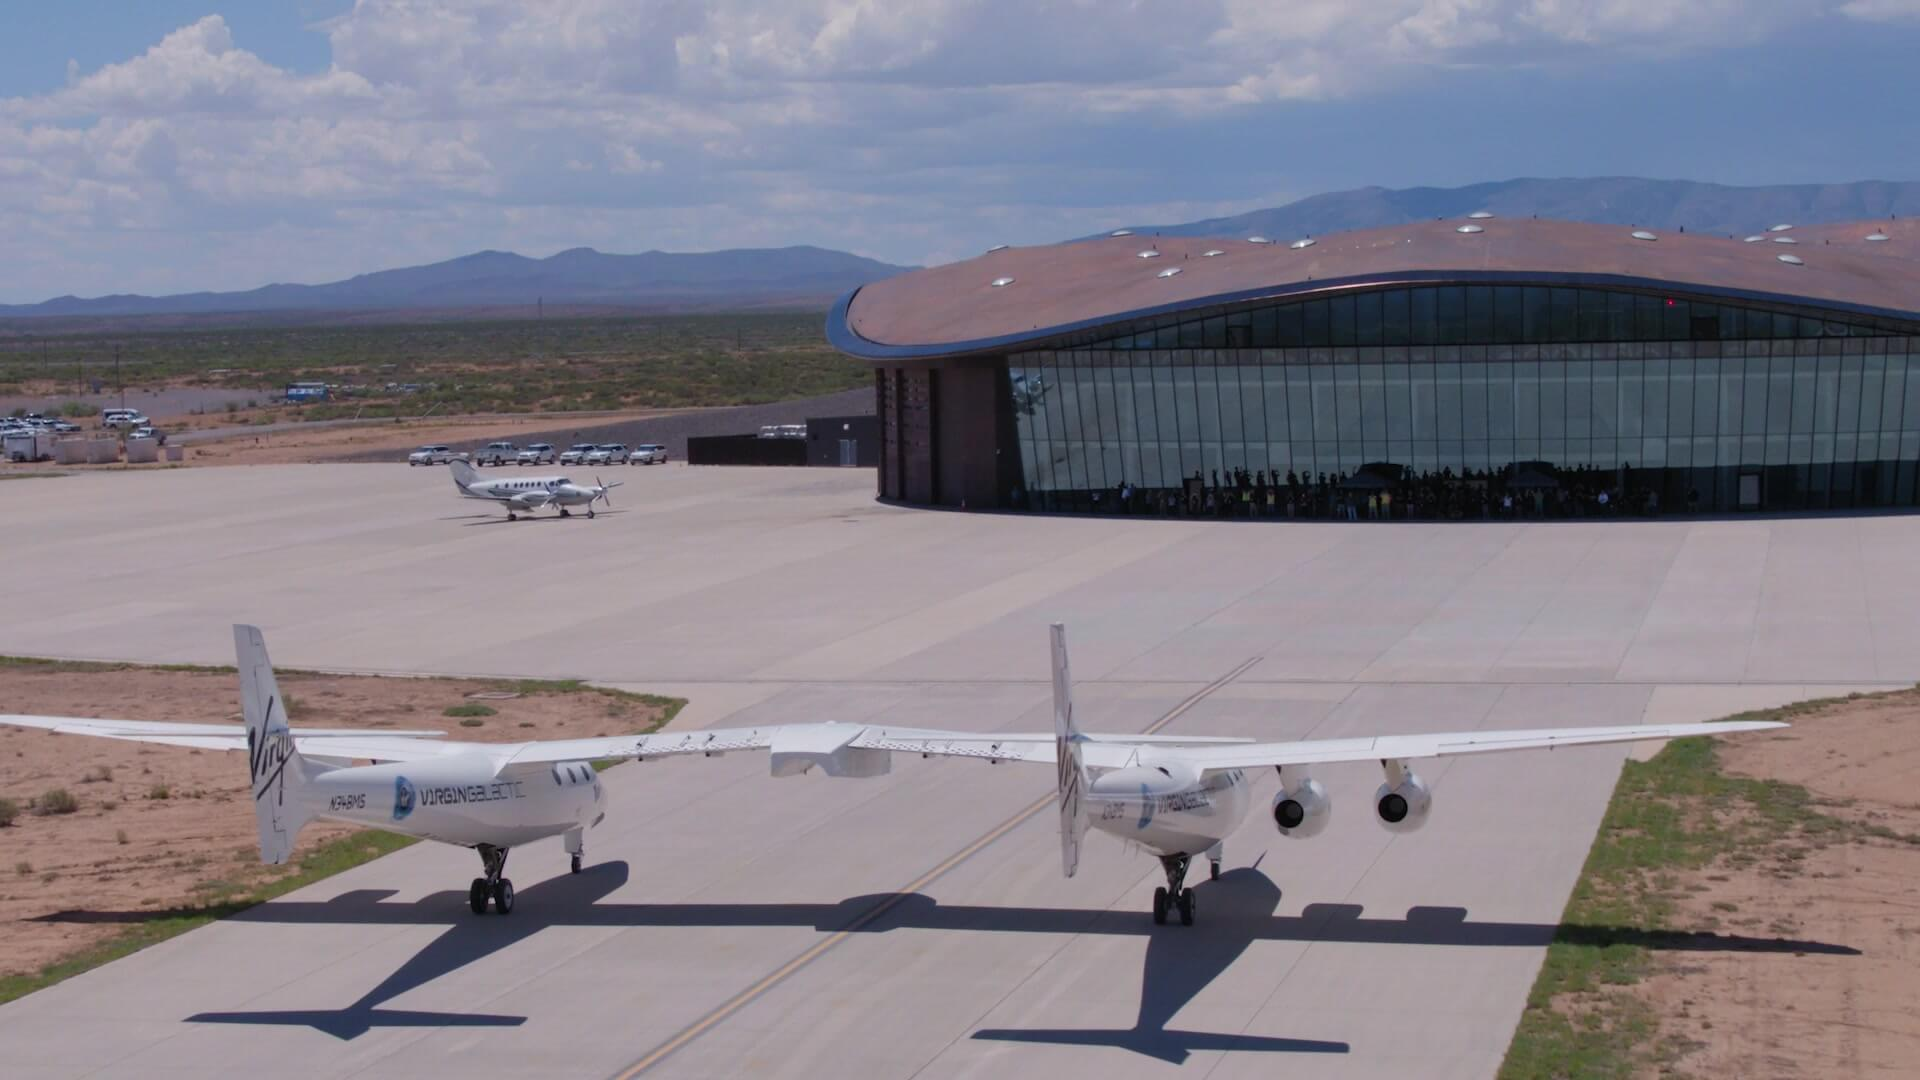 About 600 people have already dropped $250,000 apiece on a 90-minute space ride Virgin Galactic